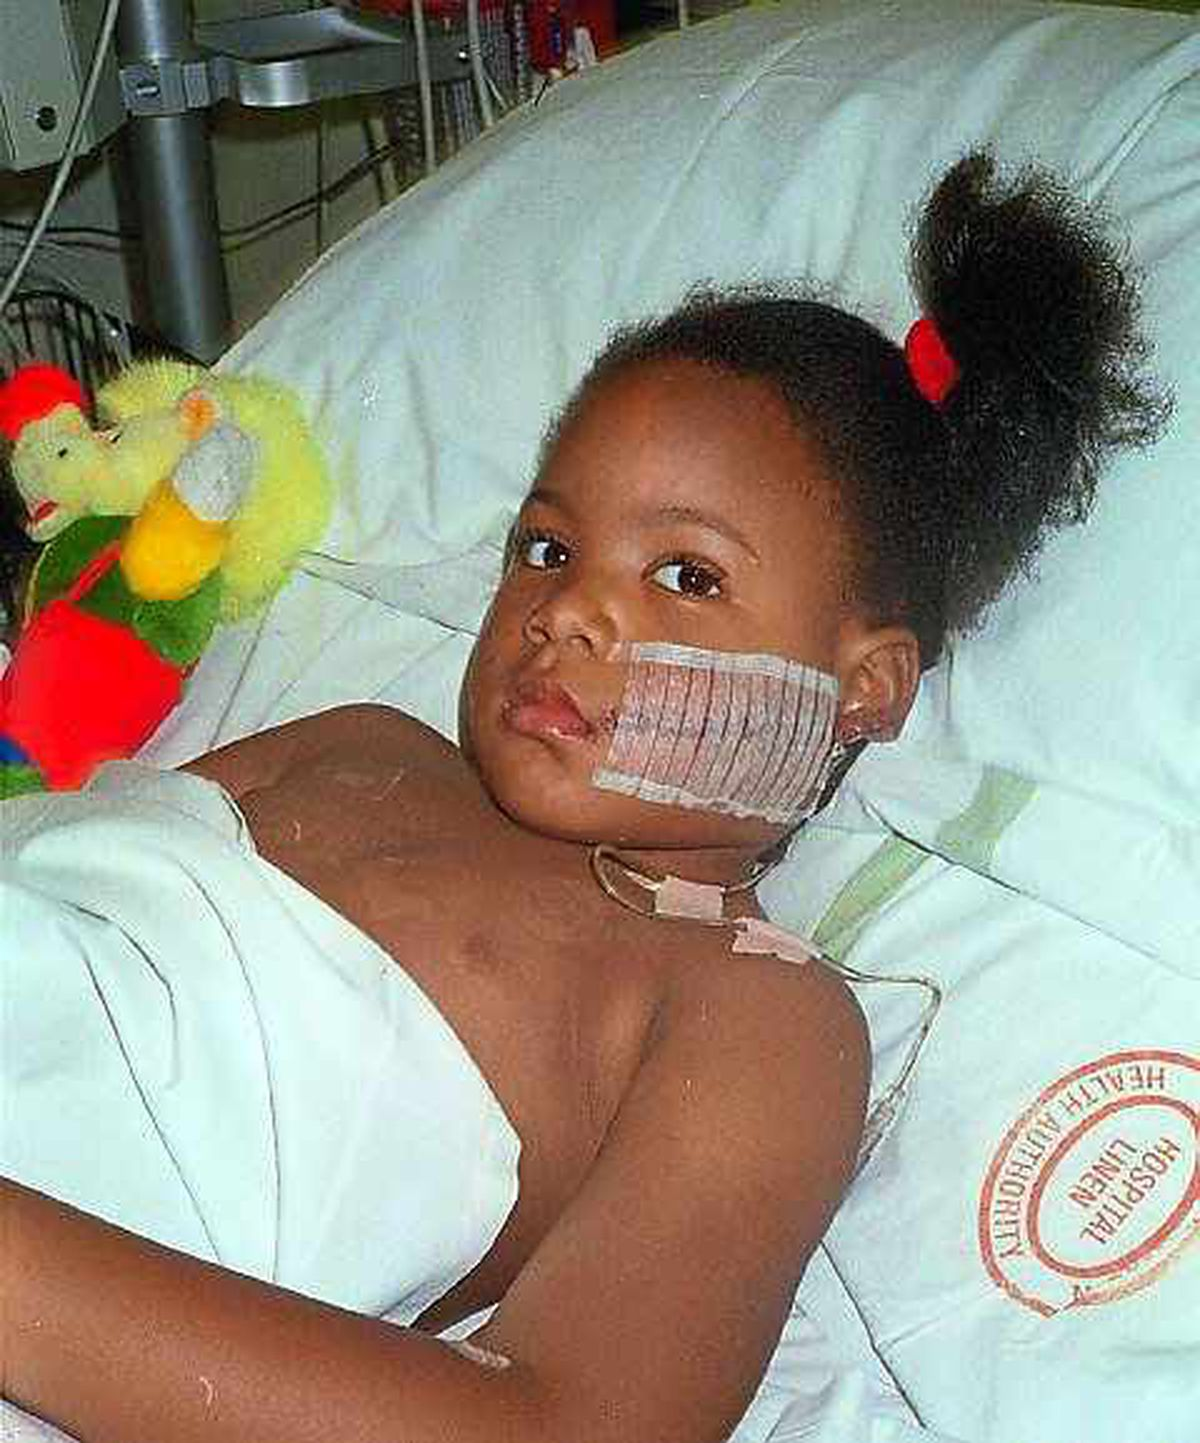 Francesca in hospital as a four-year-old in 1996